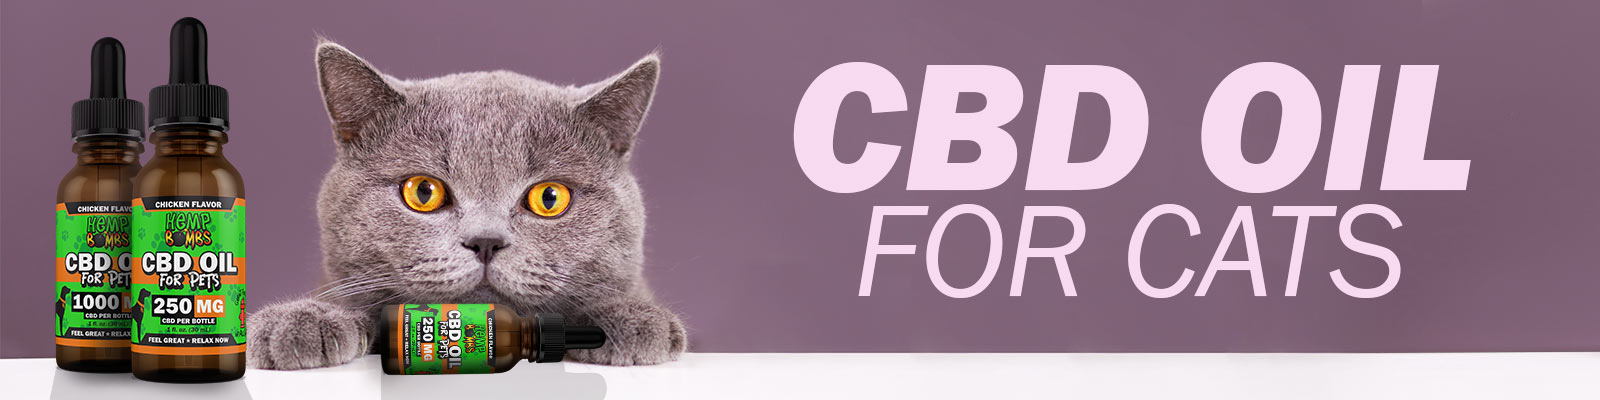 Guide on CBD Oil for Cats